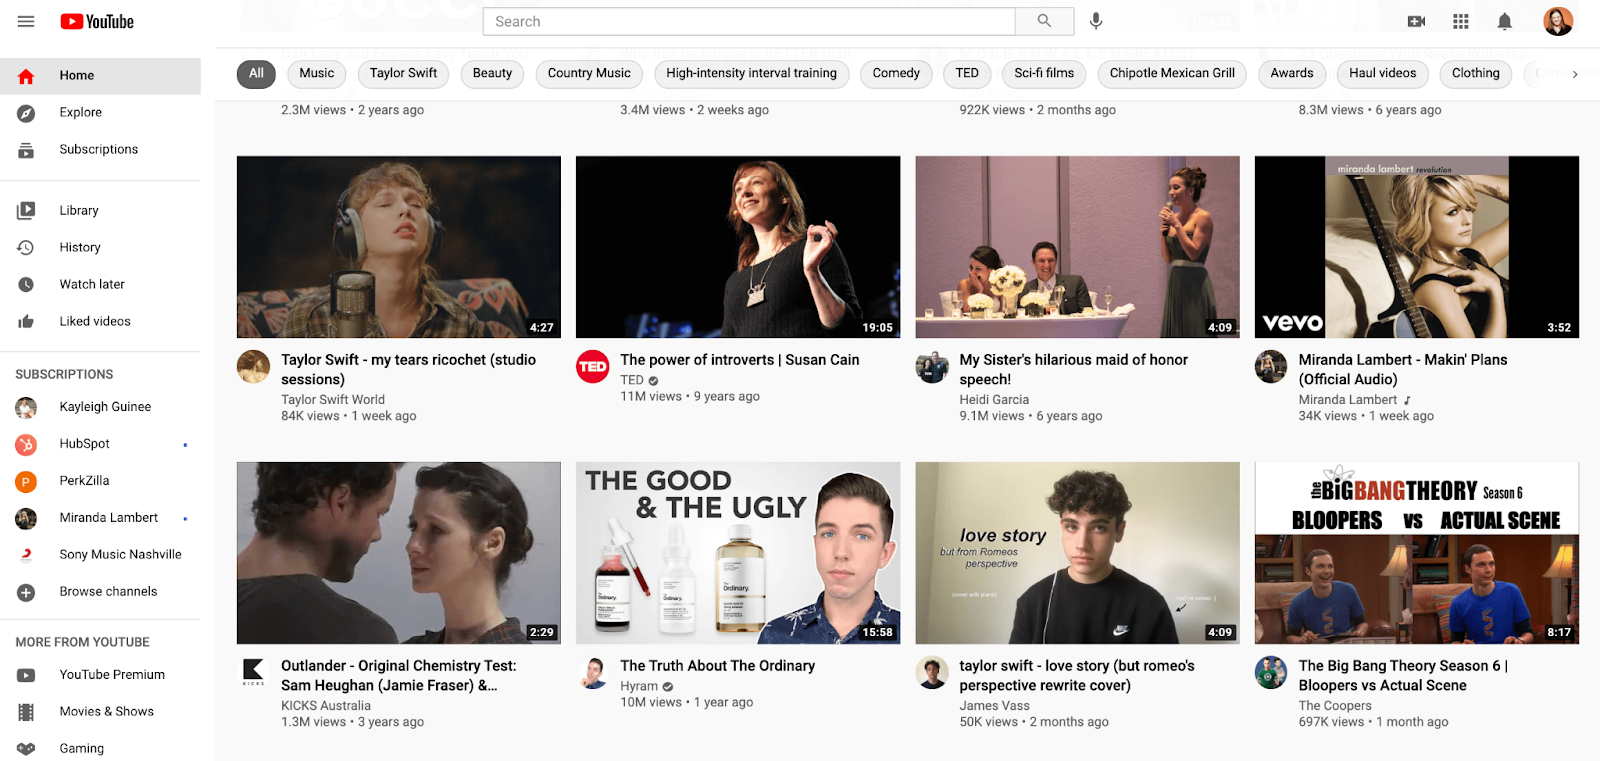 YouTube's home screen, which is one browse feature